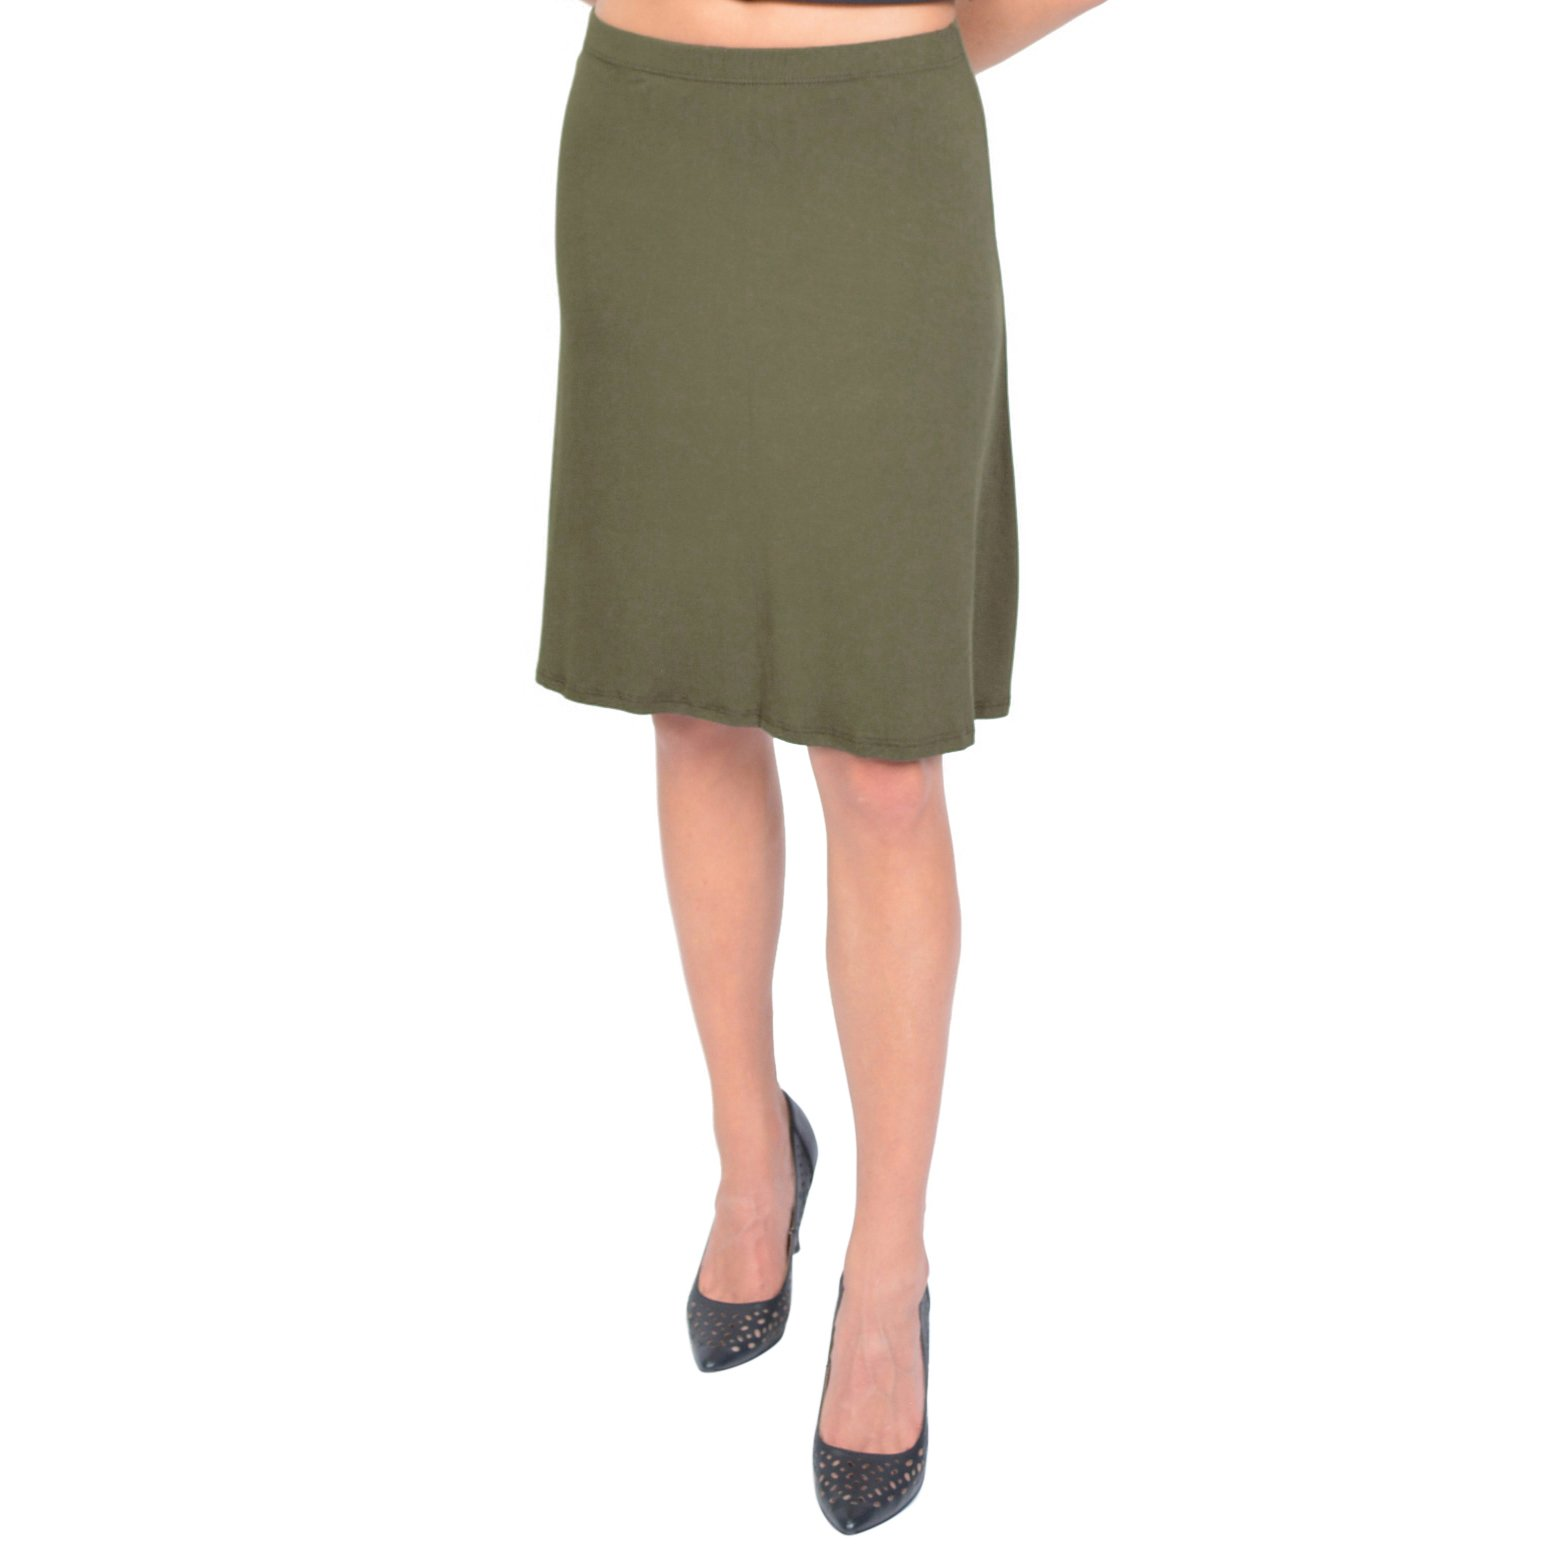 Stretch is Comfort Women's A-Line Skirt Olive Green Large